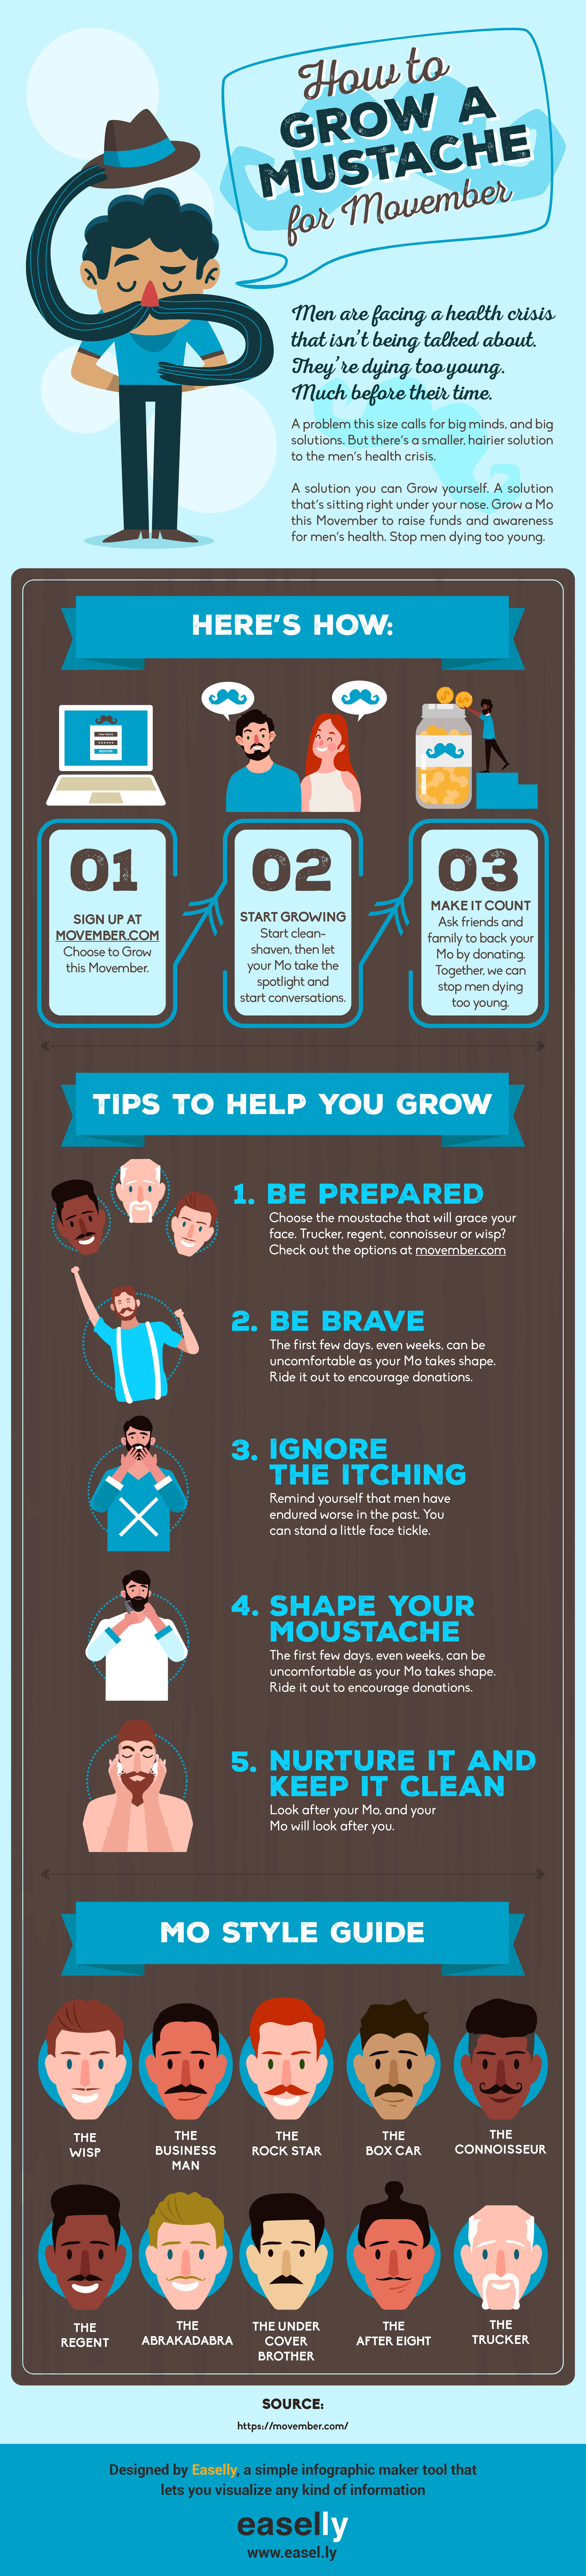 how to grow a mustache in movember